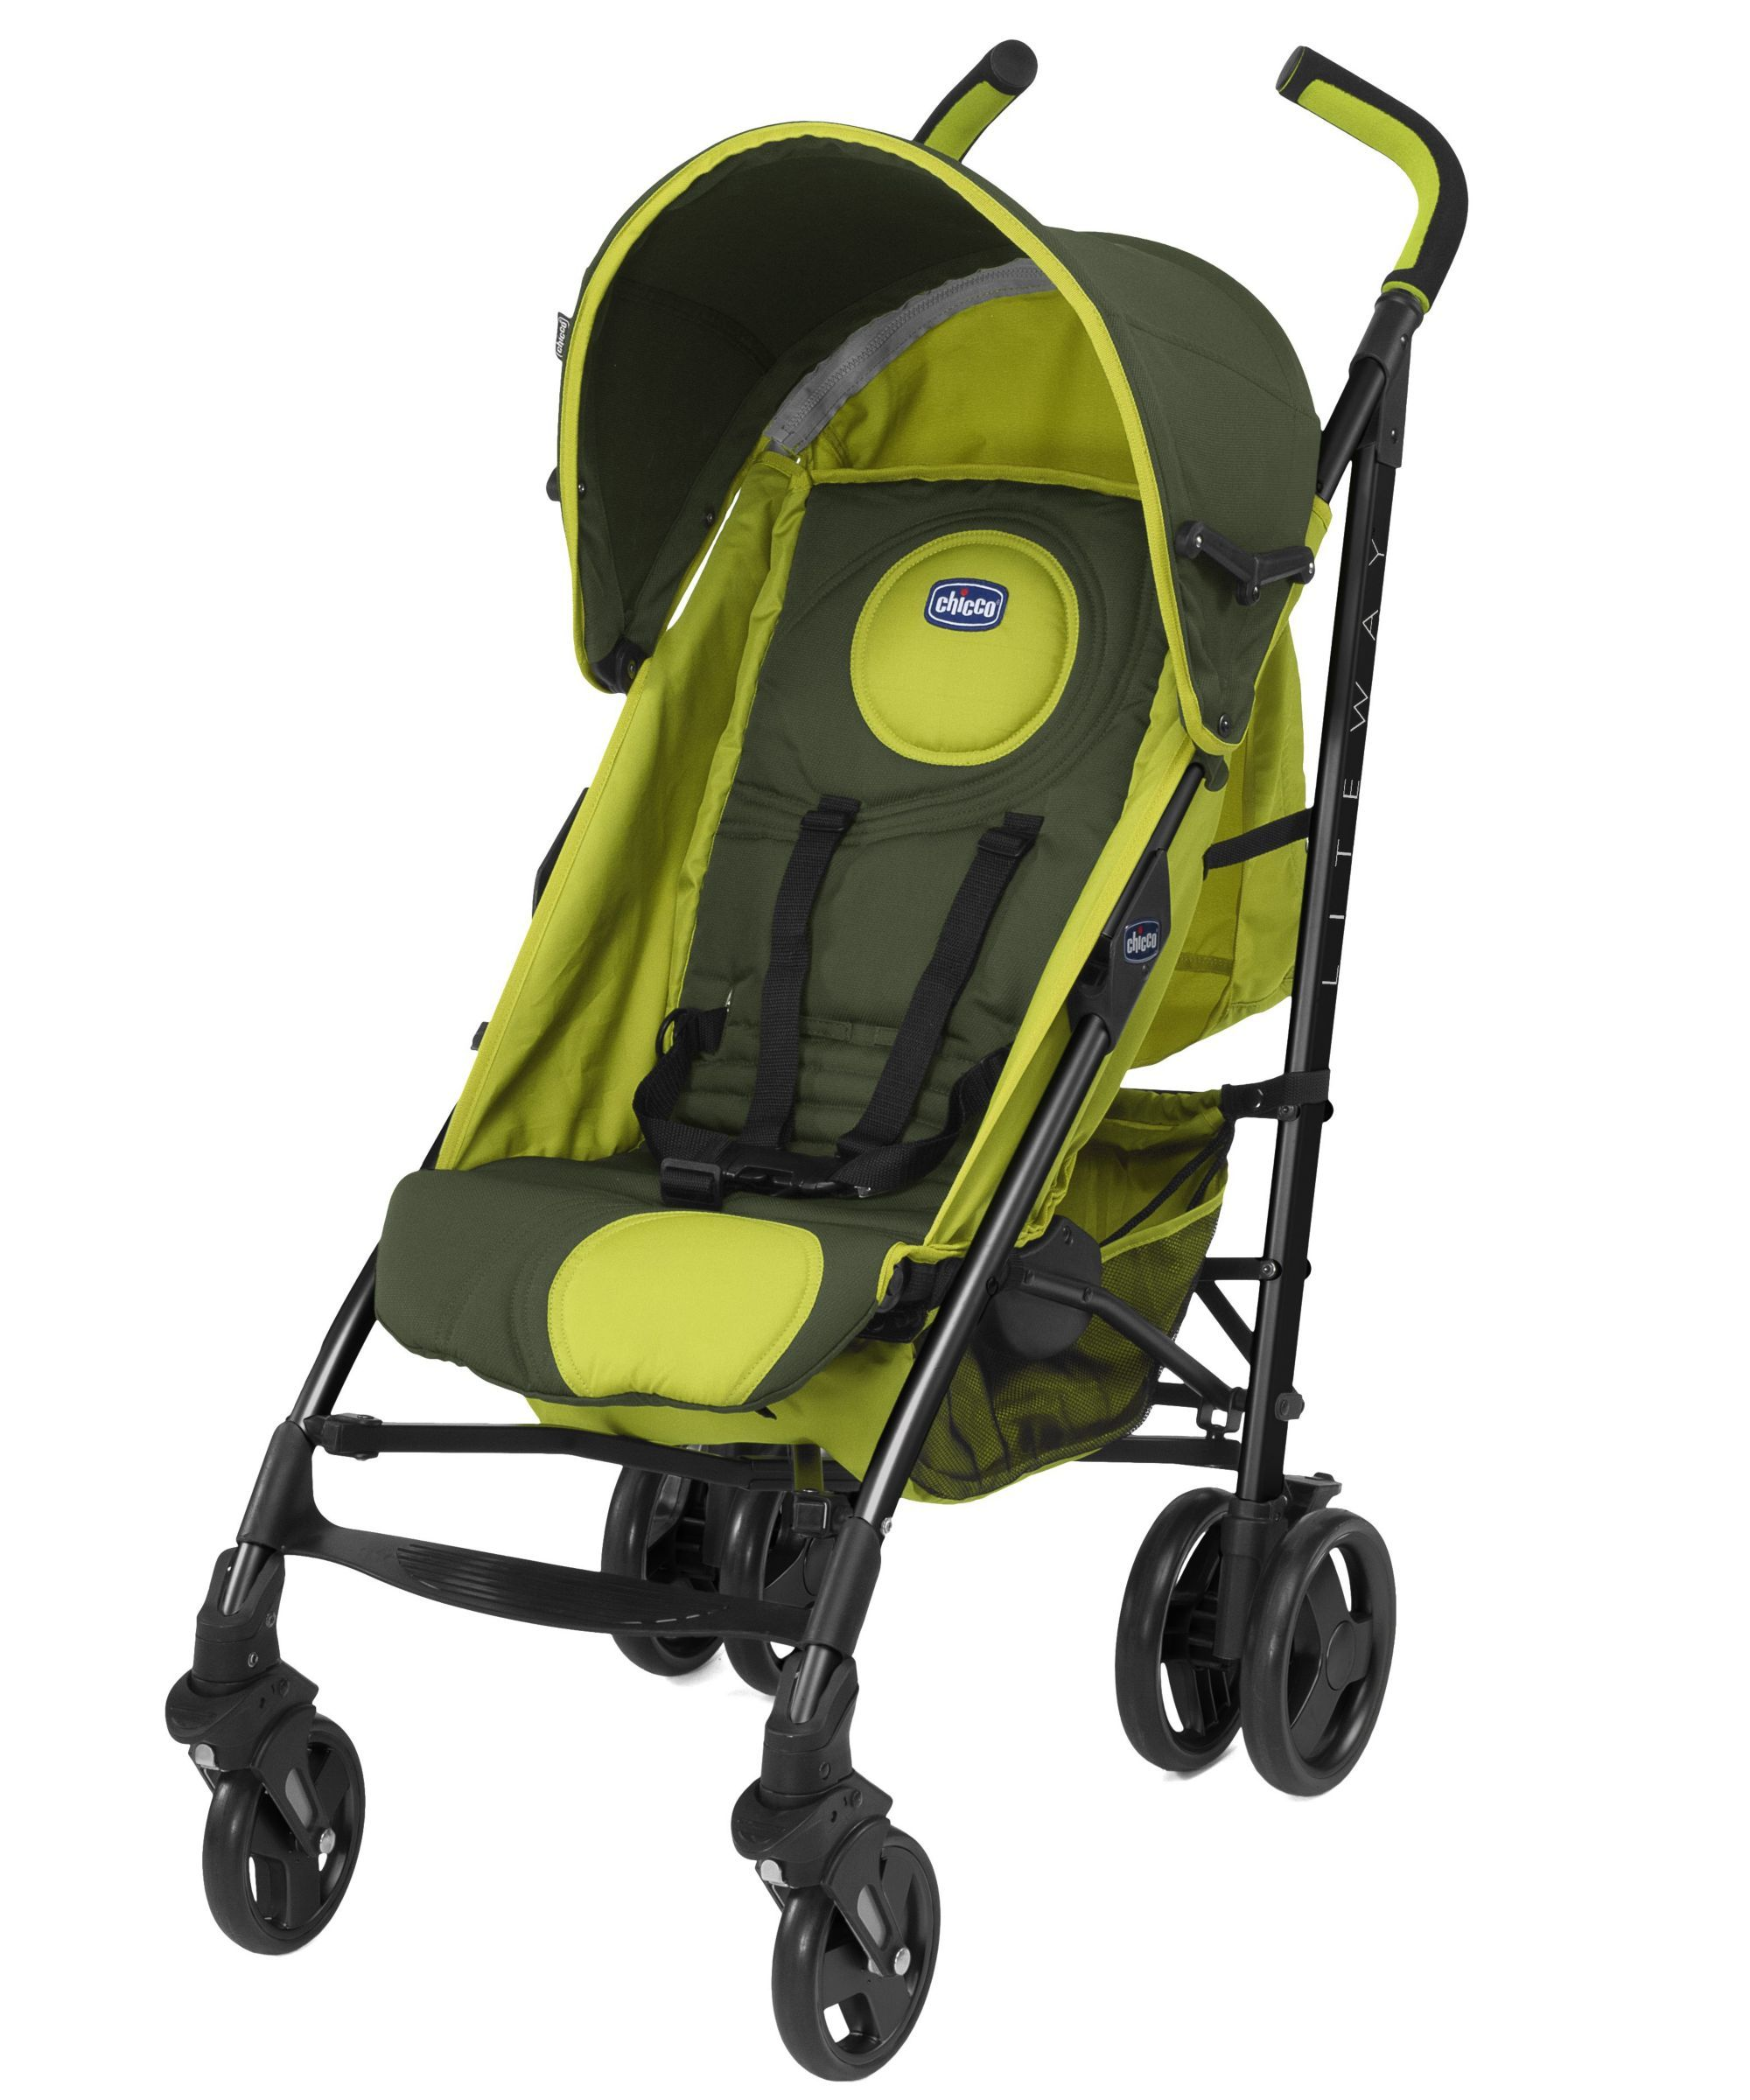 Chicco Liteway Stroller Green Wave Stroller, Chicco baby